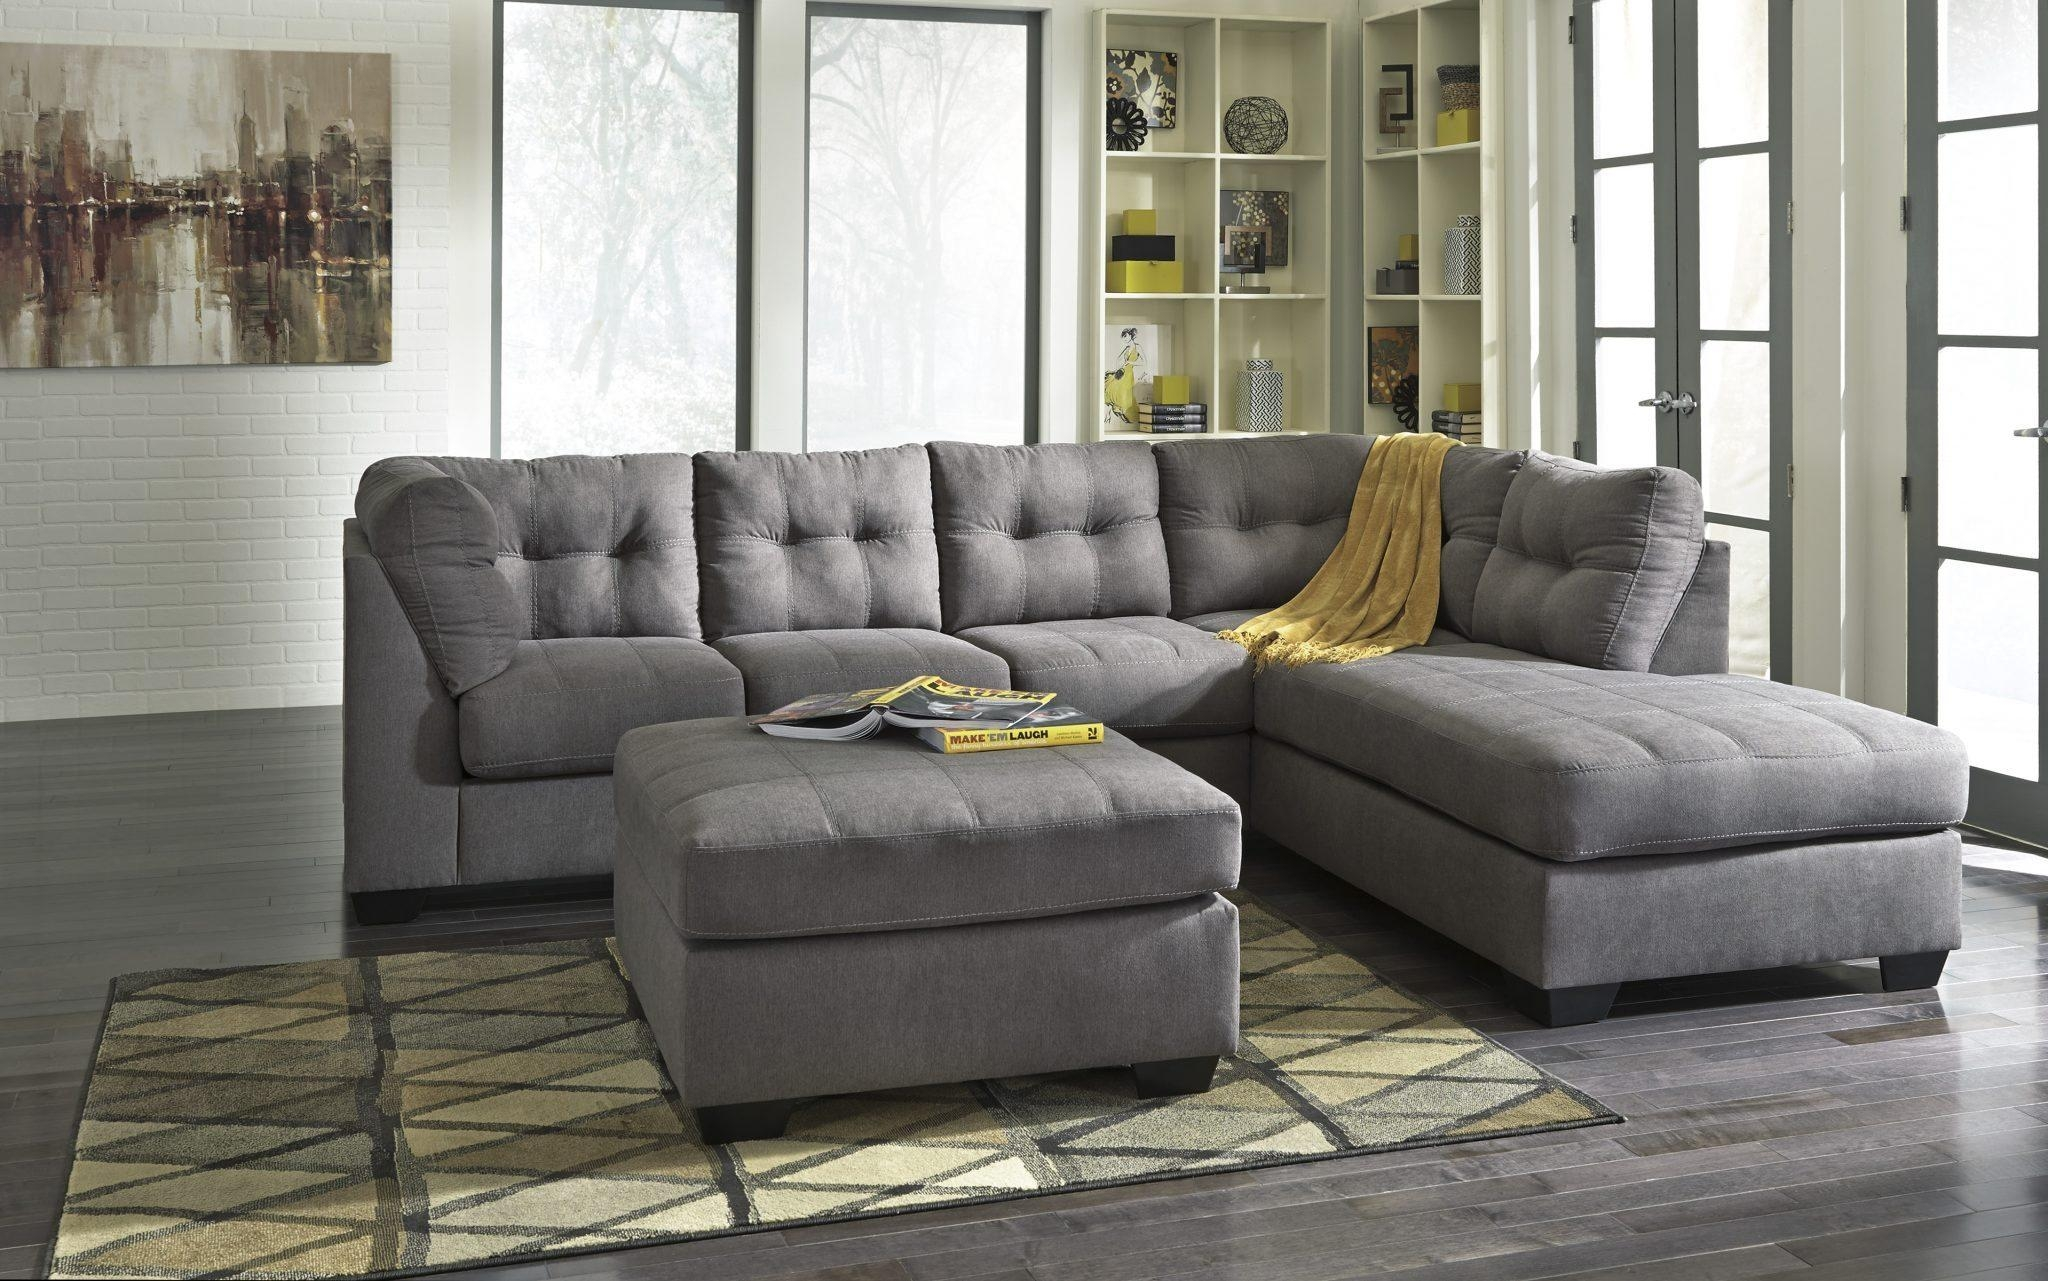 Best Furniture Mentor Oh: Furniture Store – Ashley Furniture With Ashley Corduroy Sectional Sofas (View 17 of 20)